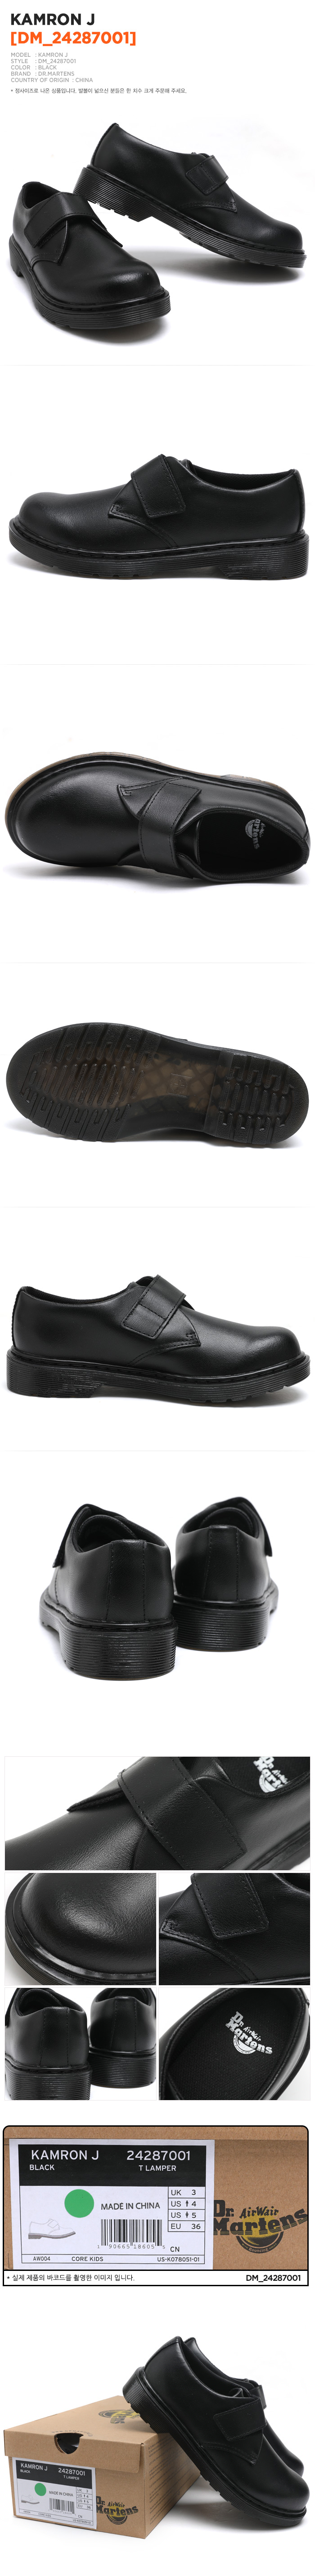 닥터마틴(DR.MARTENS) 캄론 J (KAMRON J - BLACK) [DM24287001]